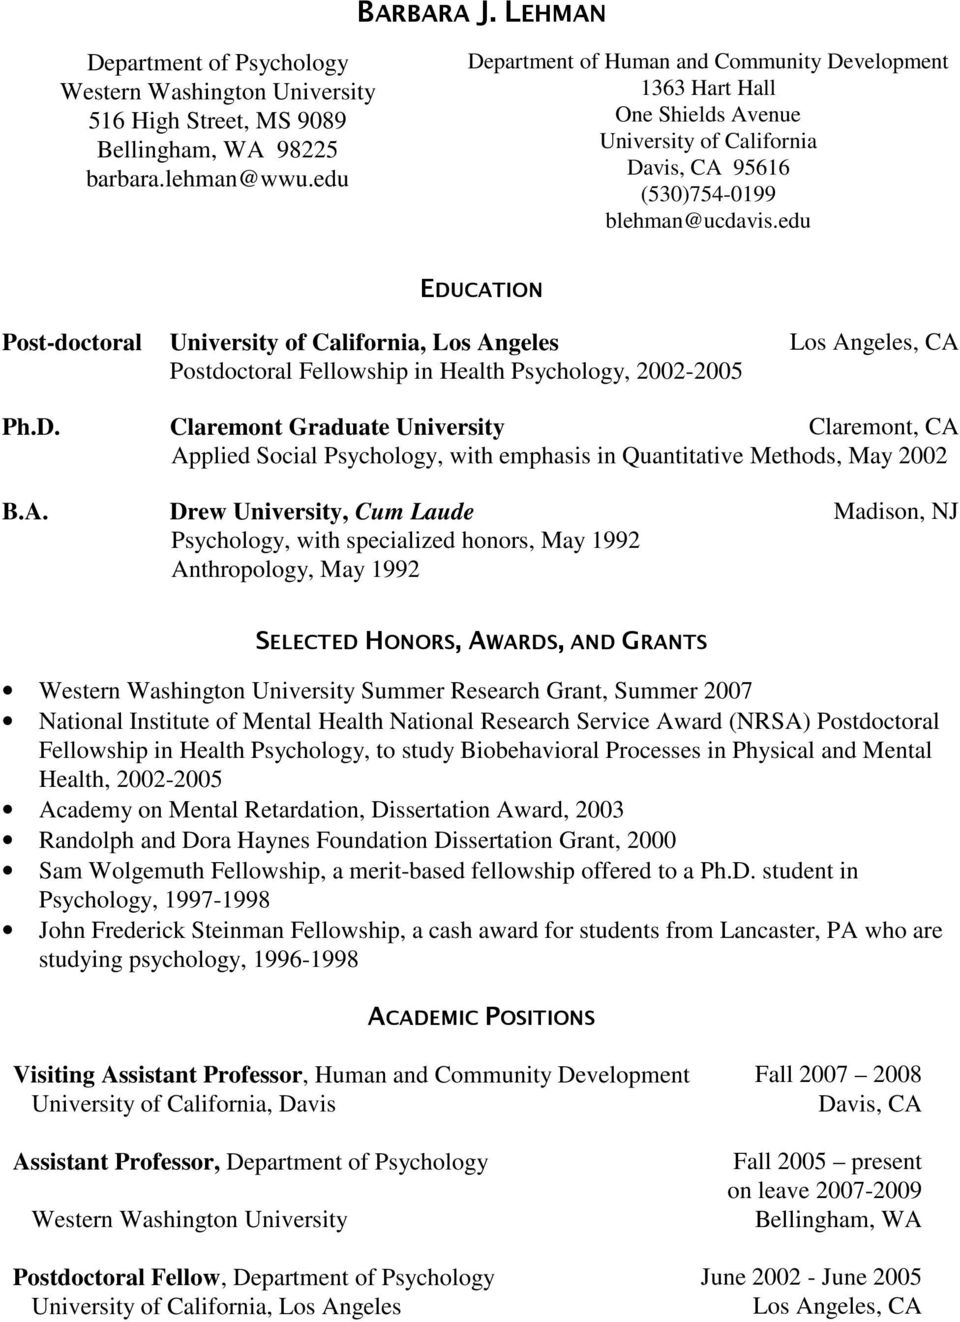 edu EDUCATION Post-doctoral University of California, Los Angeles Los Angeles, CA Postdoctoral Fellowship in Health Psychology, 2002-2005 Ph.D. Claremont, CA Applied Social Psychology, with emphasis in Quantitative Methods, May 2002 B.